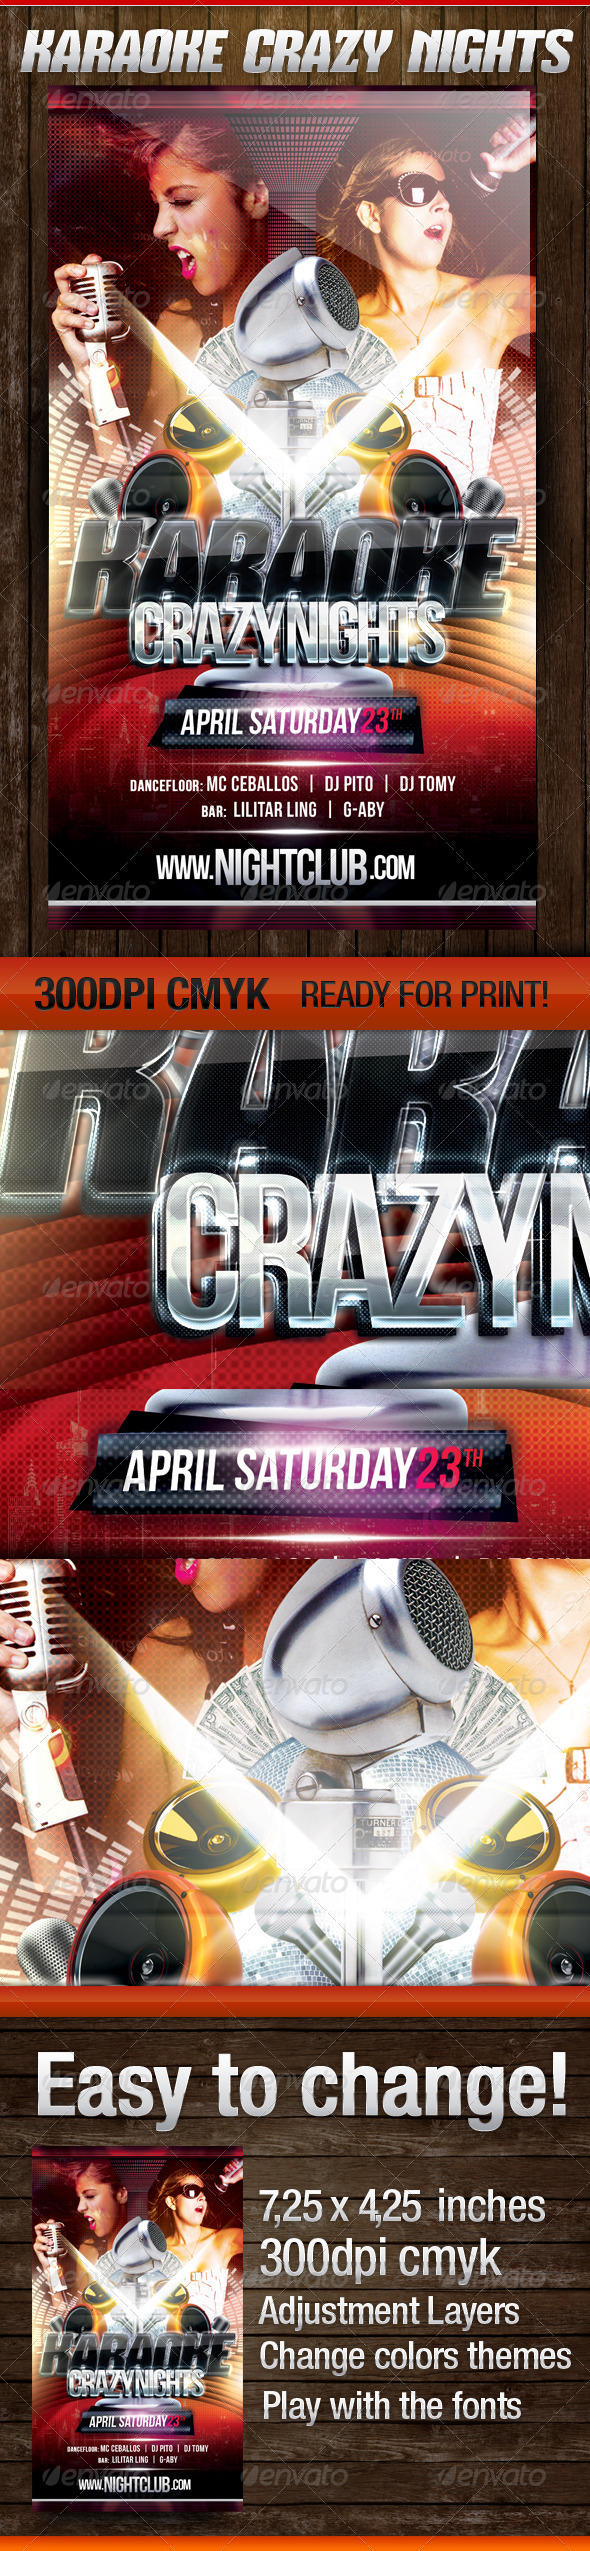 Karaoke Crazy Nights - Flyers Print Templates